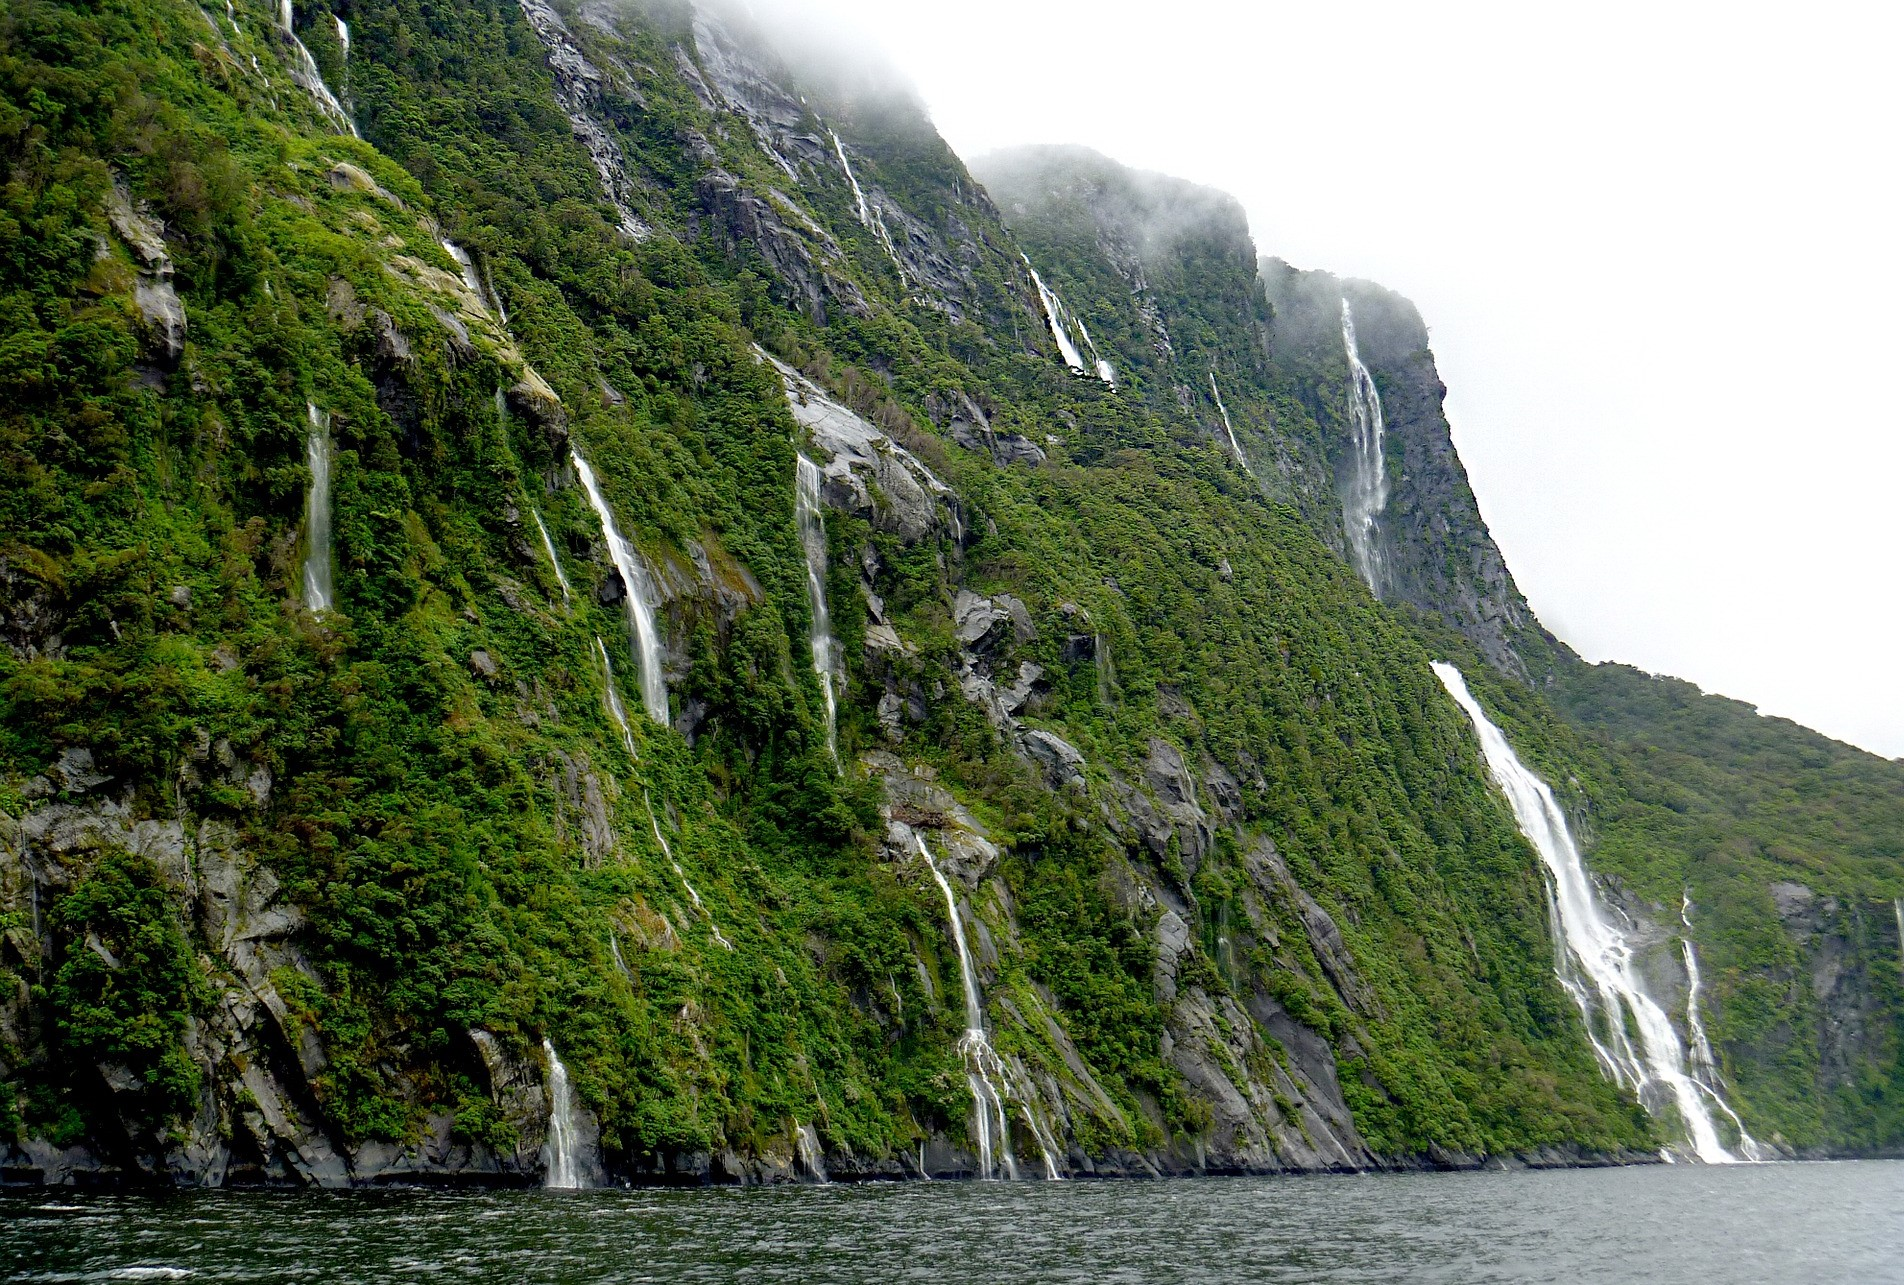 milford sound waterfalls-2170678_1920 cropped.jpg